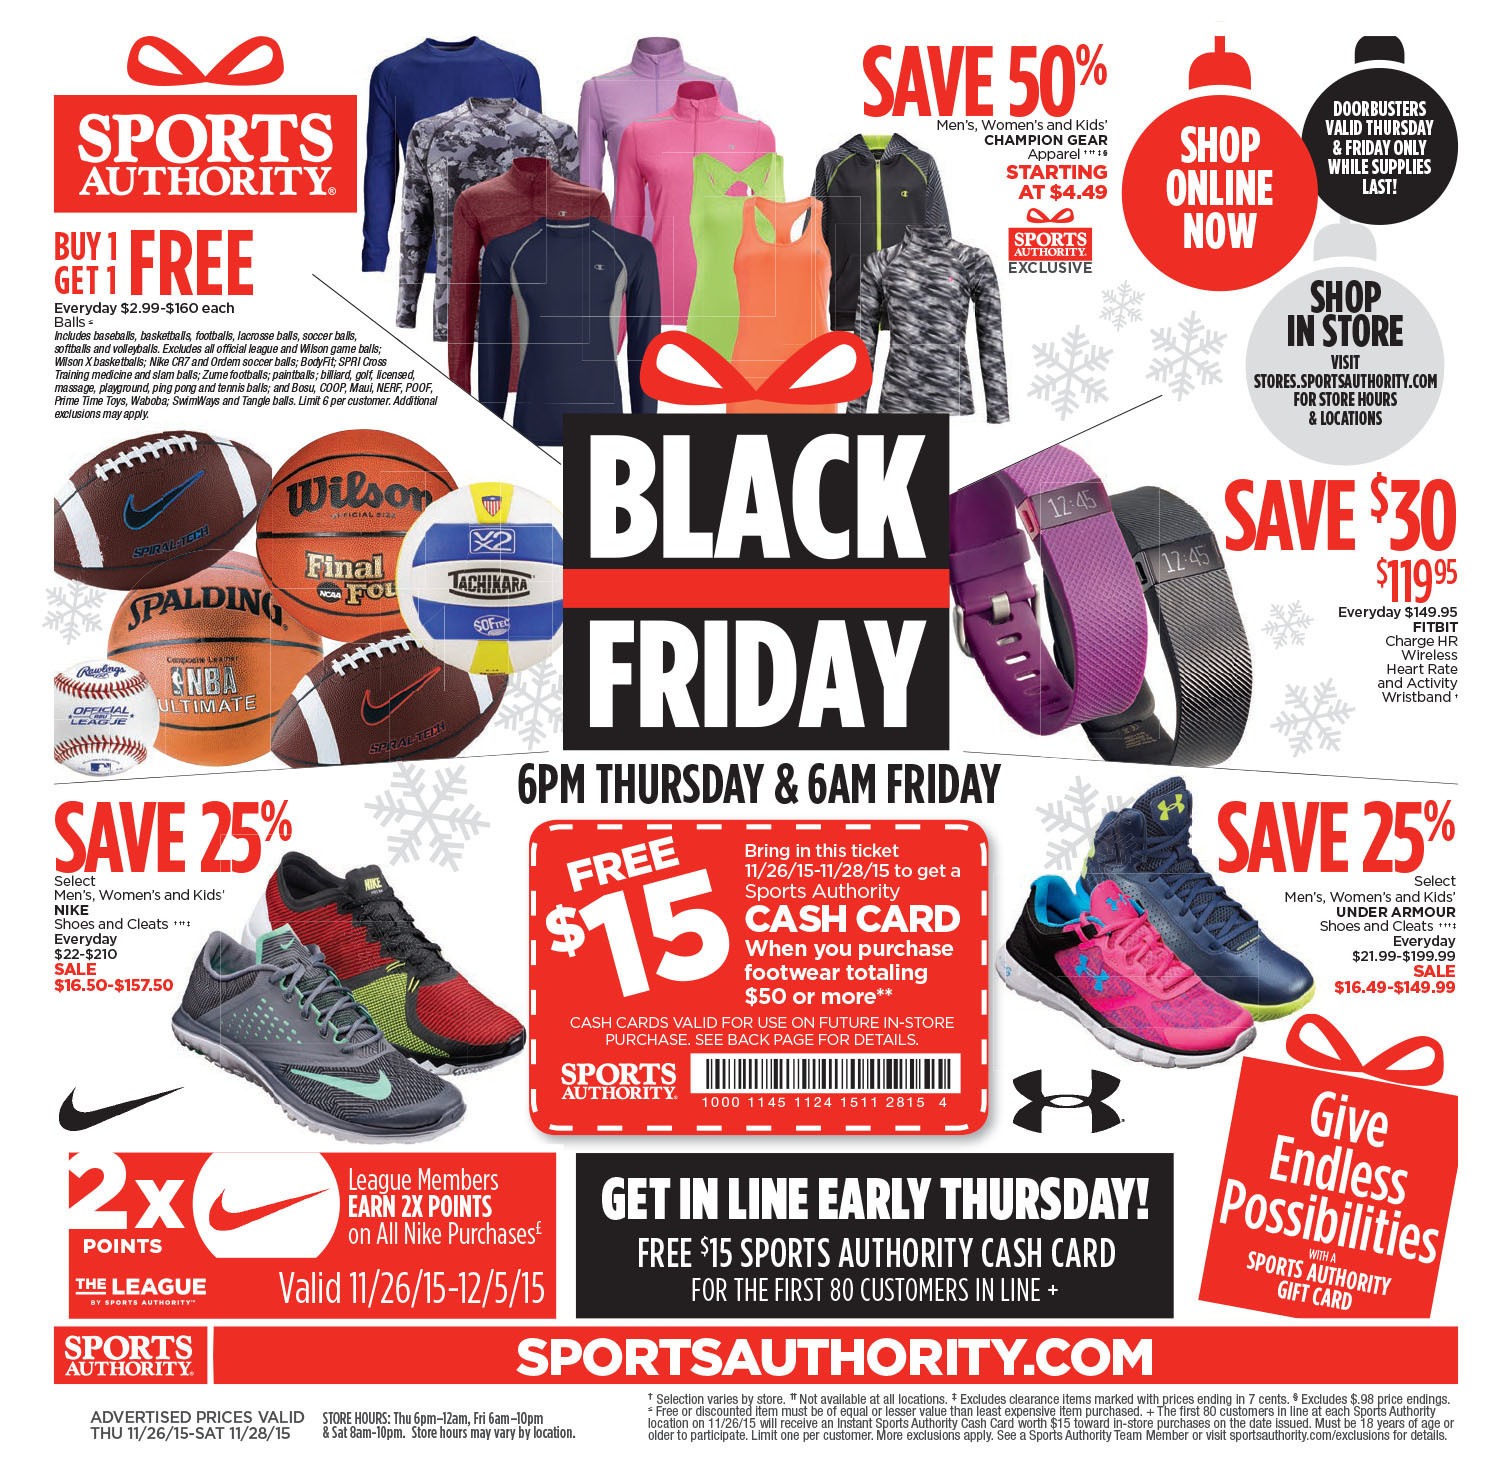 Sports Authority Black Friday 2015 Ad Page 1